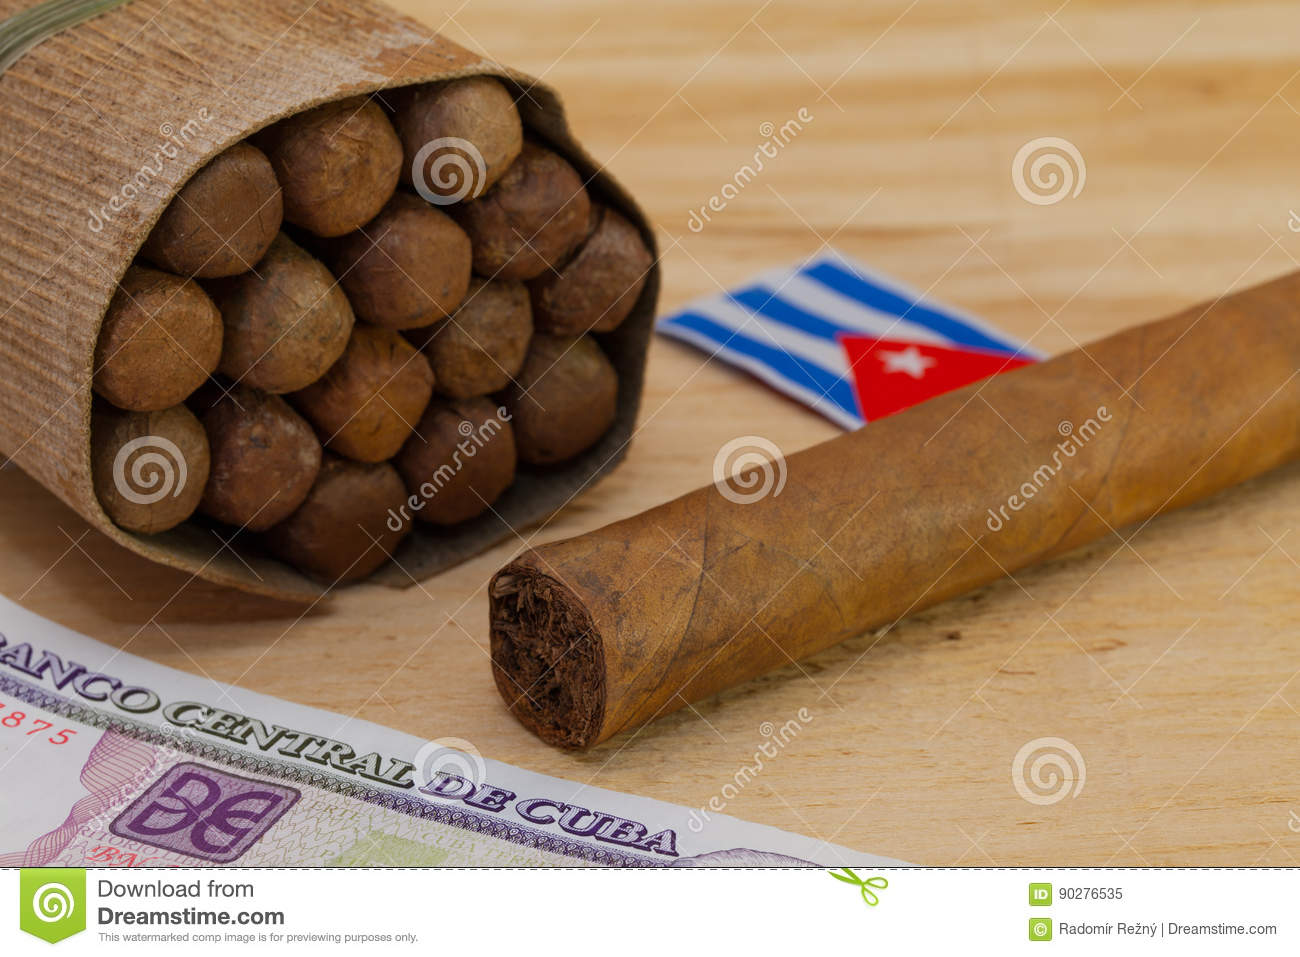 Luxury Cuban Cigars And Money On The Wooden Desk Stock Image - Image